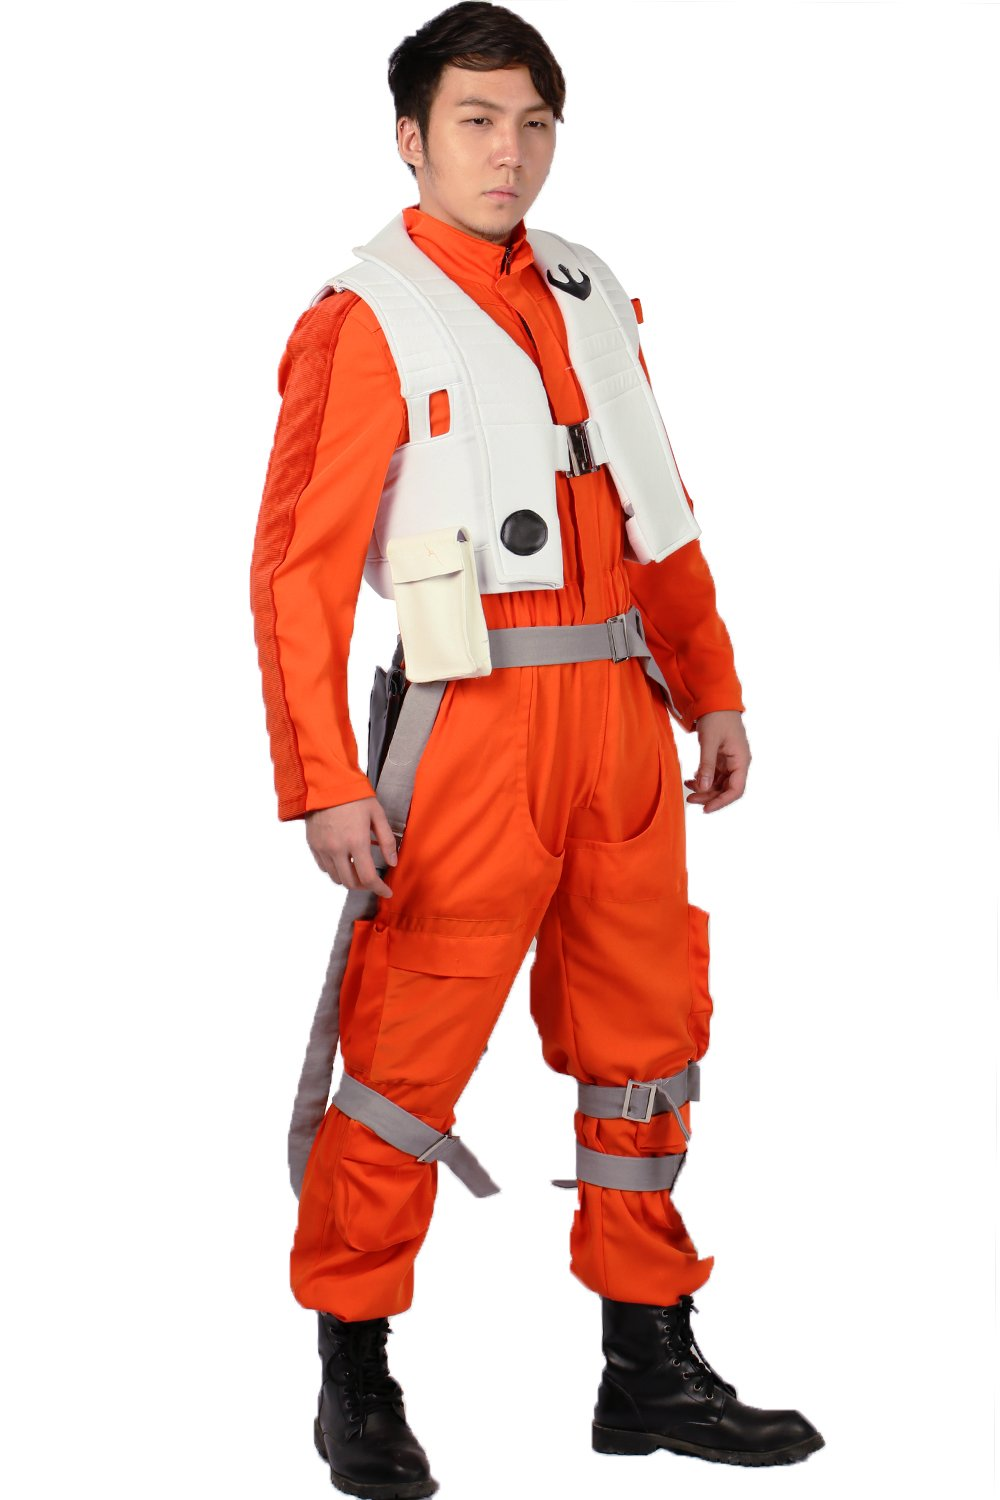 XCOSER Poe Dameron Costume Deluxe Orange Jumpsuit Suit Halloween Cosplay Outfit XL by xcoser (Image #3)